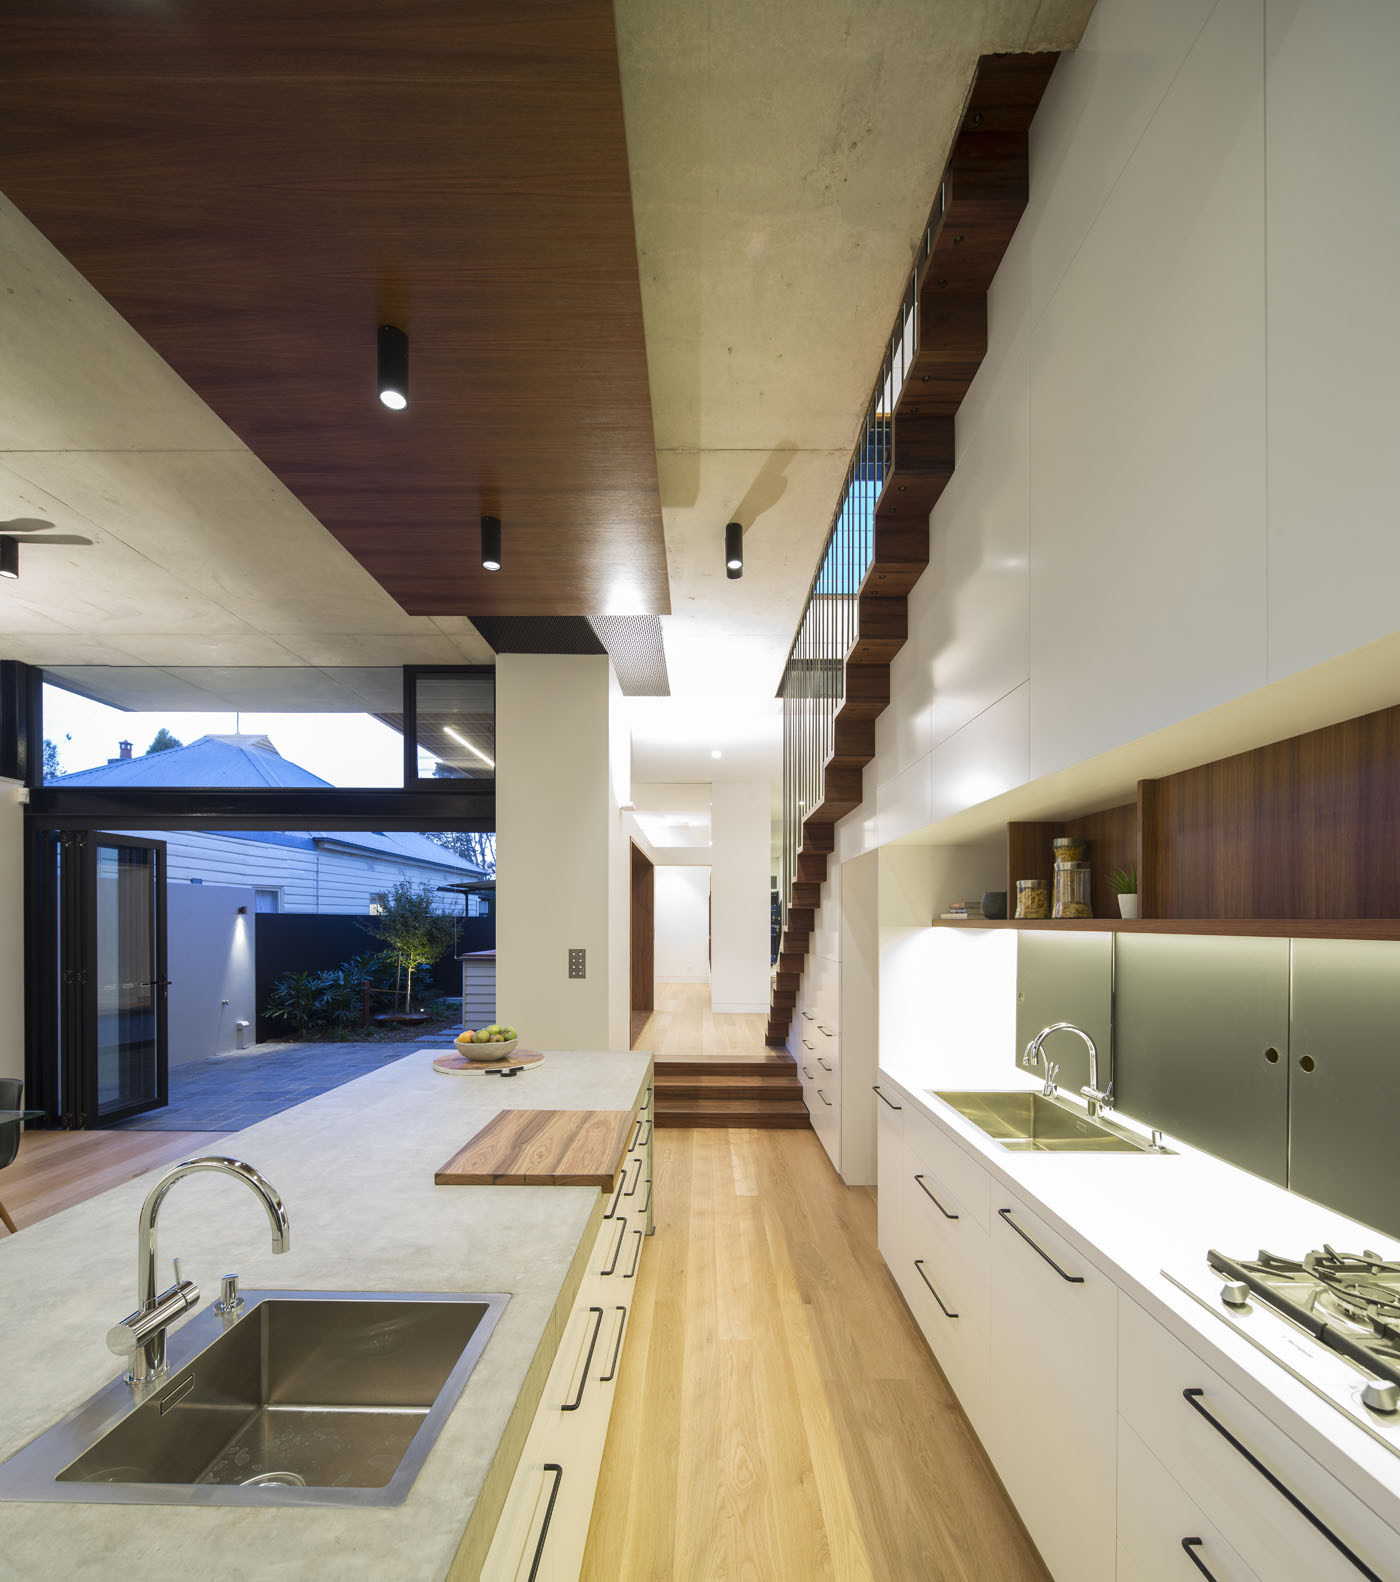 Sheppard Wilson House by Sydney award winning residential architecture office Sam Crawford Architects. American oak flooring against white joinery and concrete island